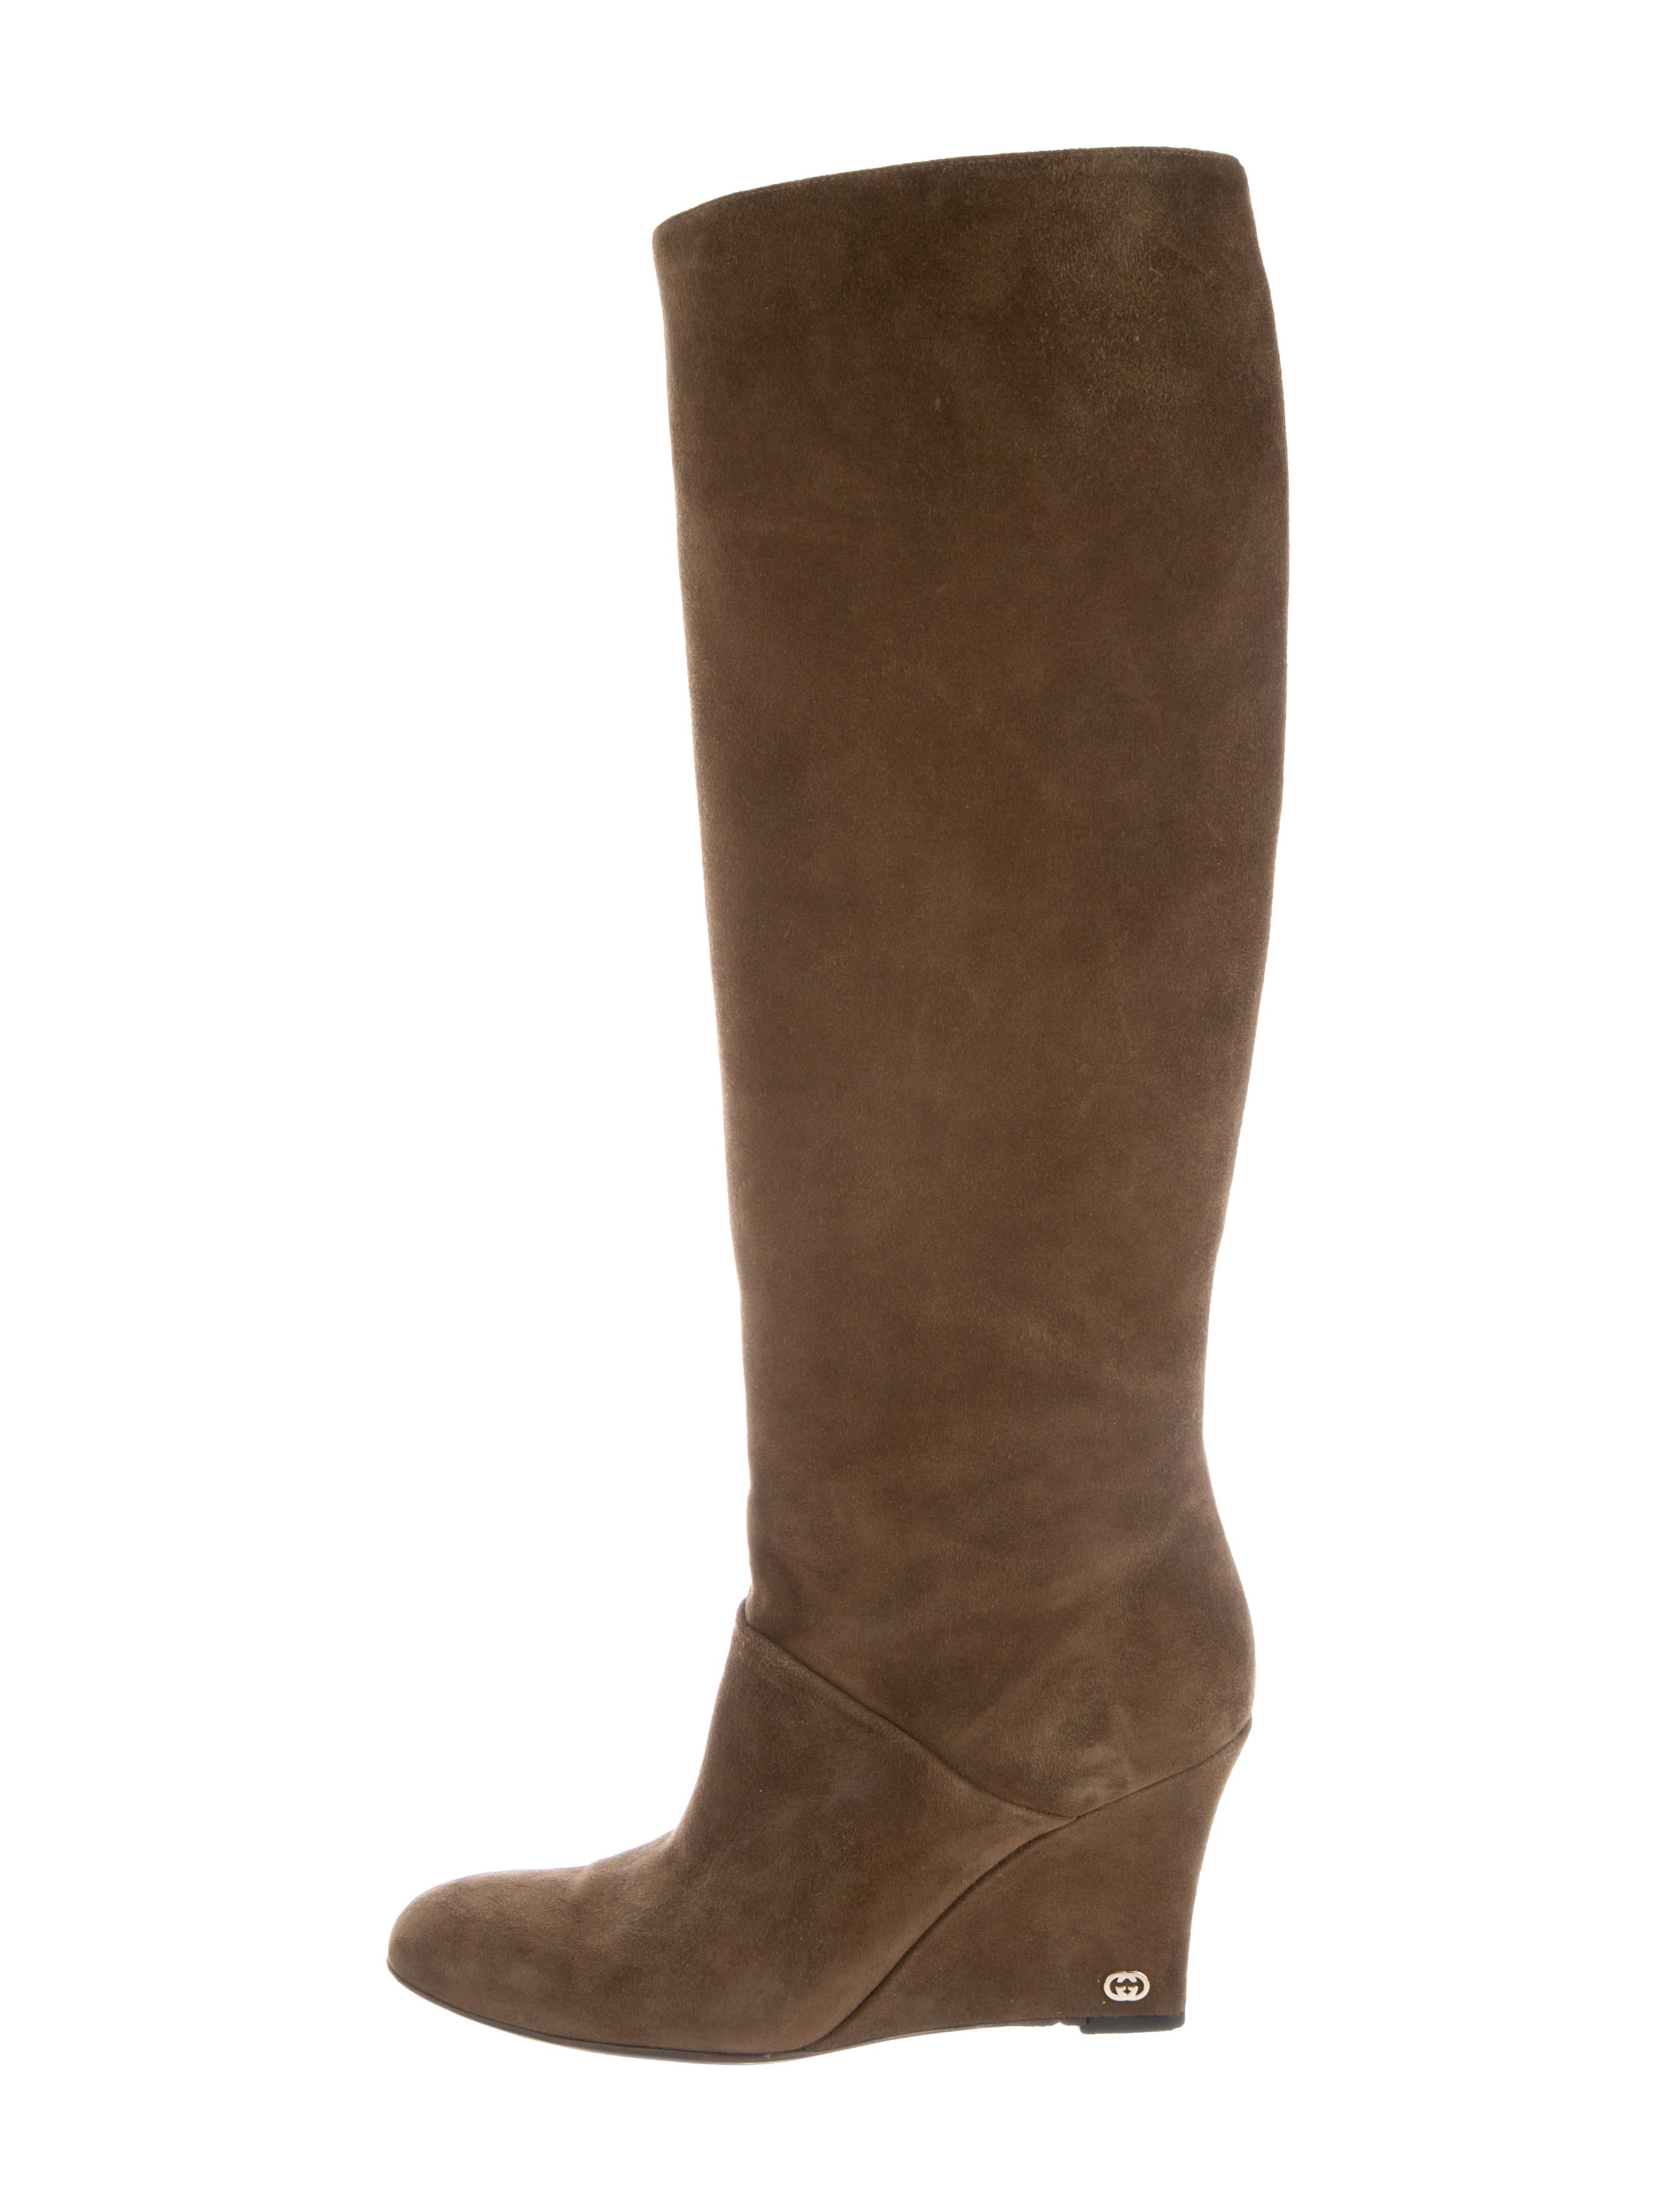 646a811d01e Gucci Suede Wedge Boots - Shoes - GUC254015